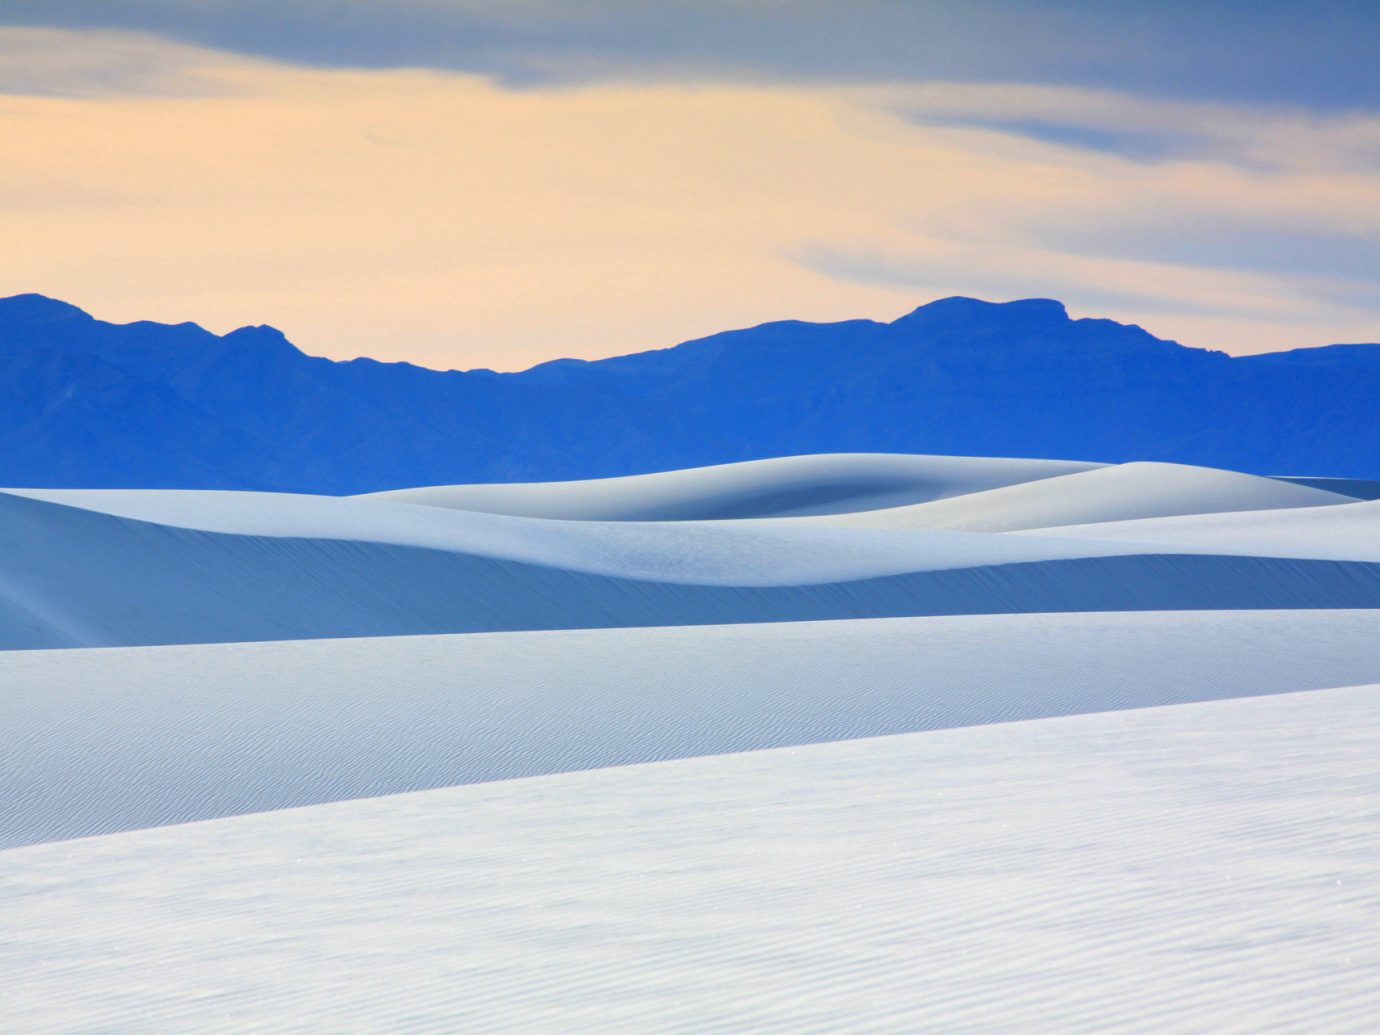 Trip Ideas sky outdoor snow Nature mountainous landforms mountain geographical feature landform Winter natural environment cloud weather arctic covered mountain range season hill arctic ocean piste ice plateau tundra sand clouds slope day distance